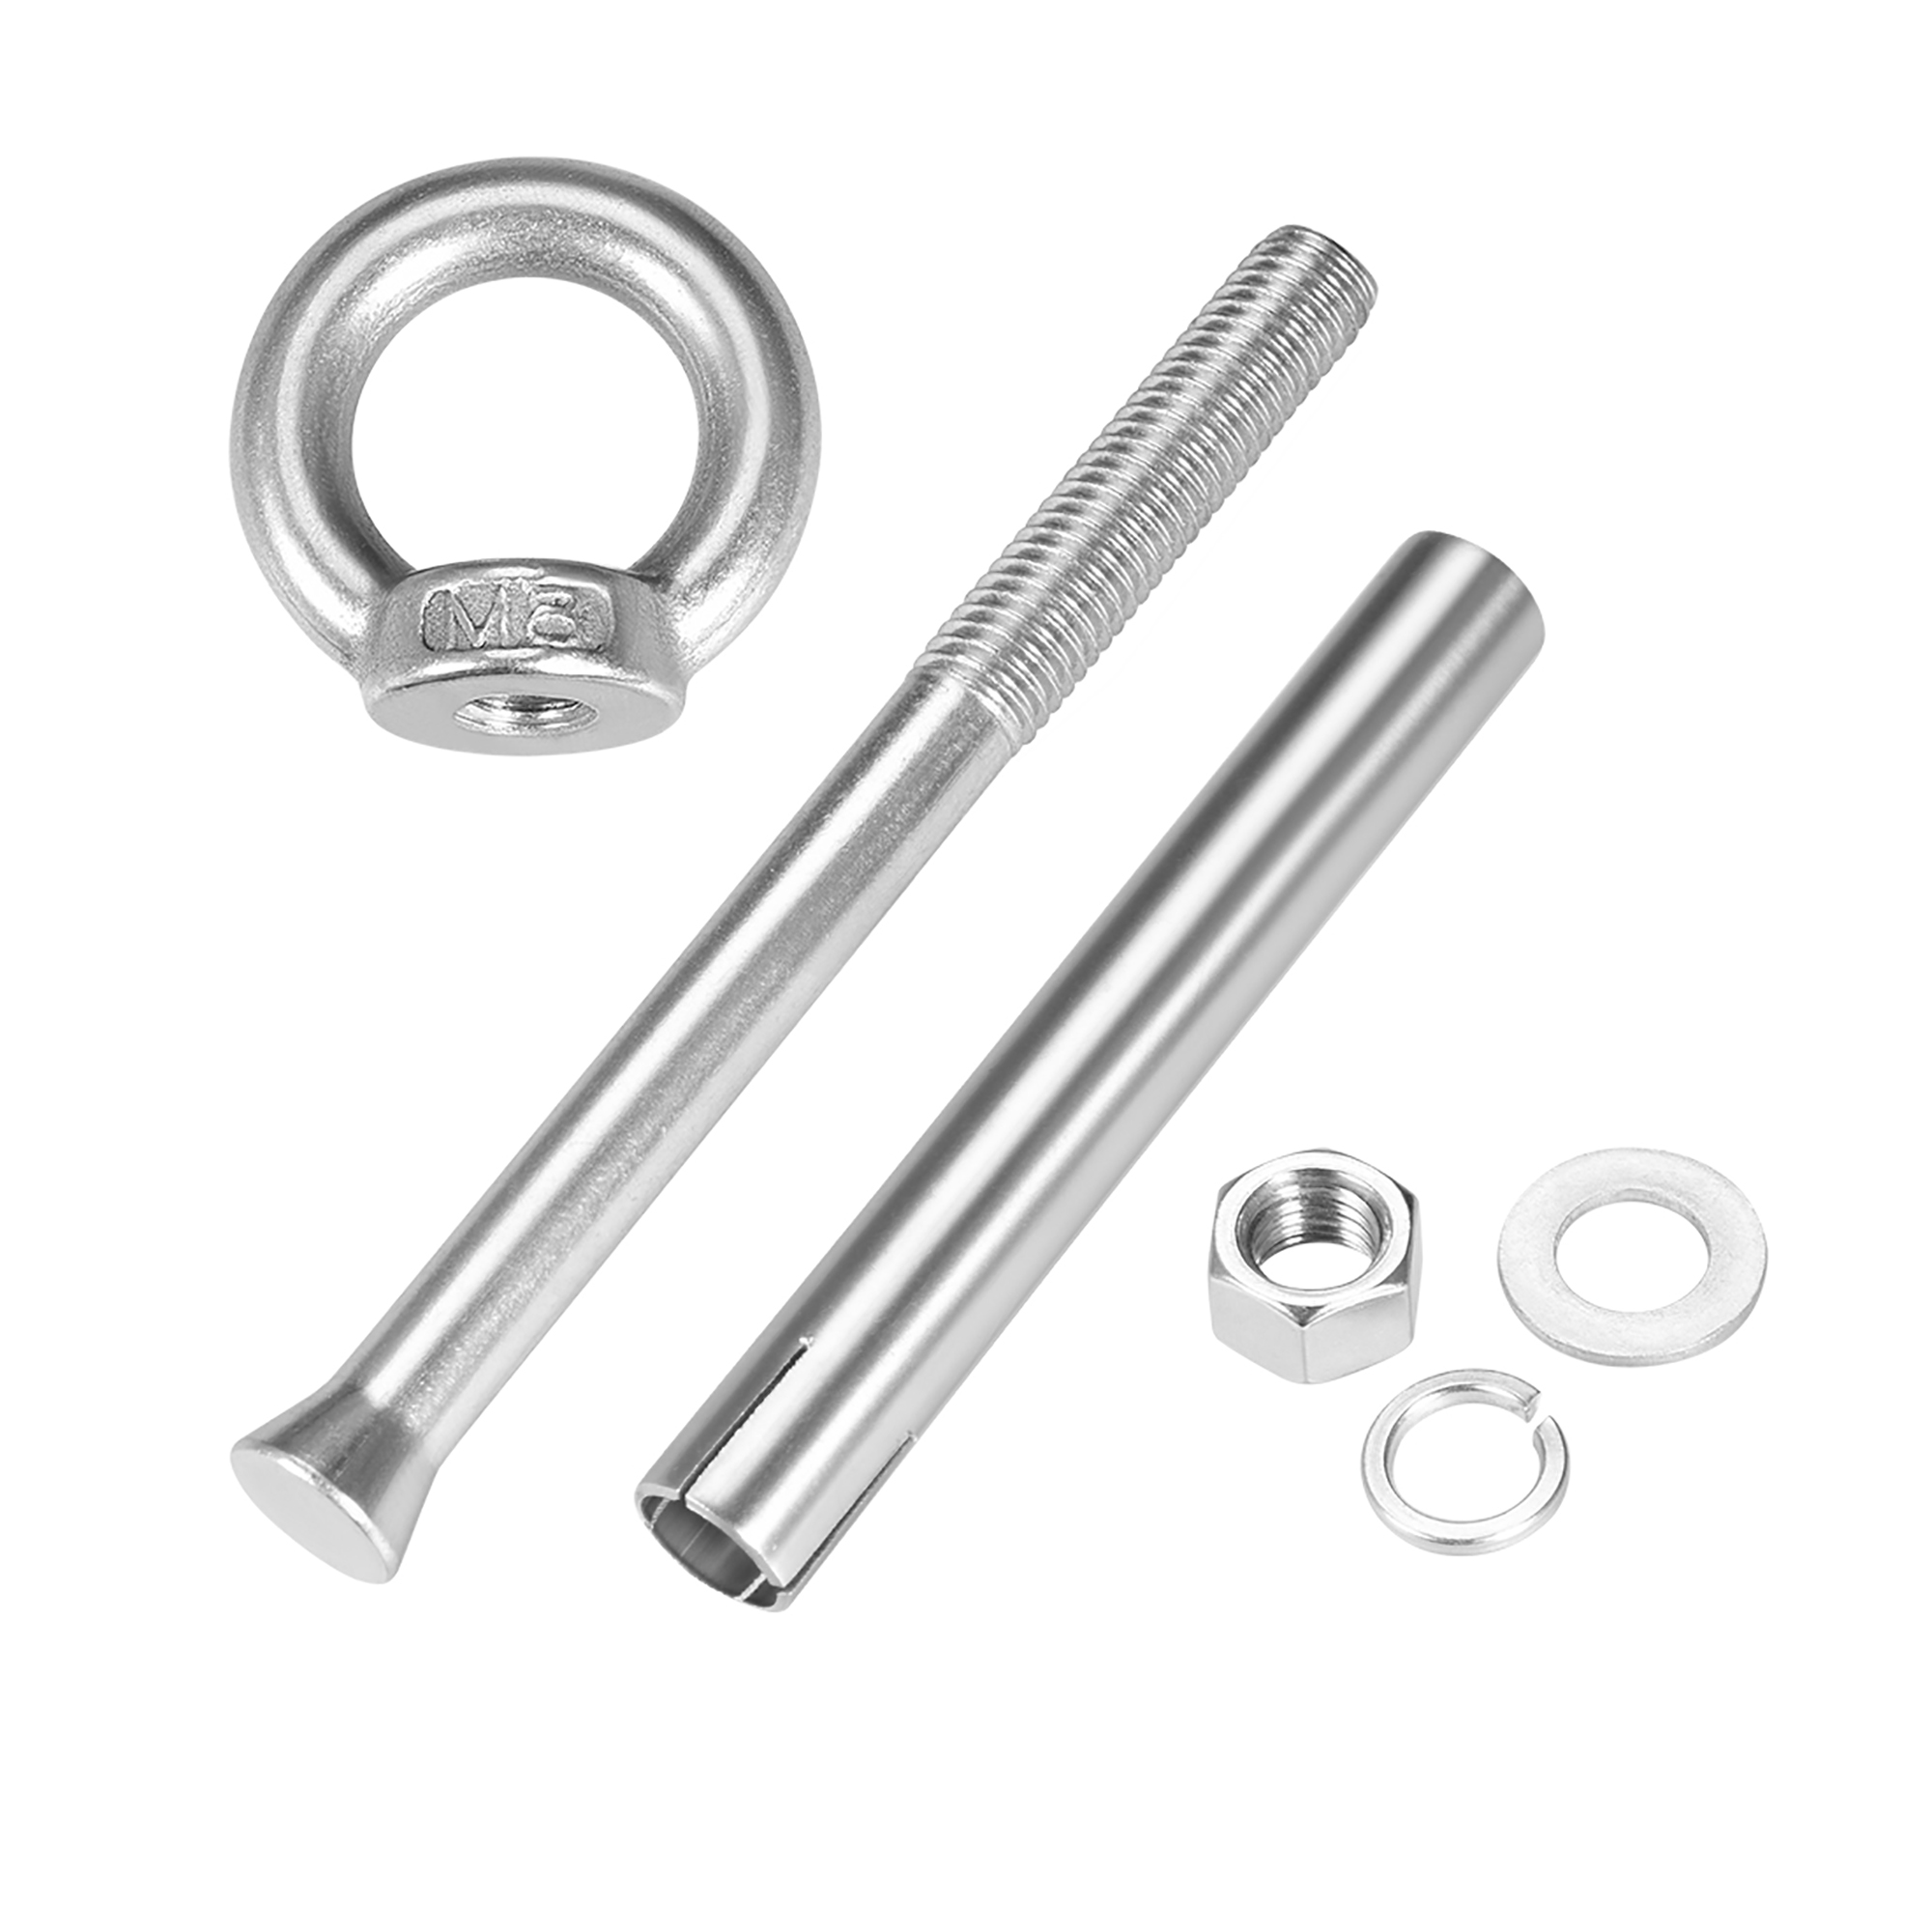 M8 x 120 Expansion Eyebolt Eye Nut Screw with Ring Anchor Raw Bolts 4 Pcs - image 3 de 4